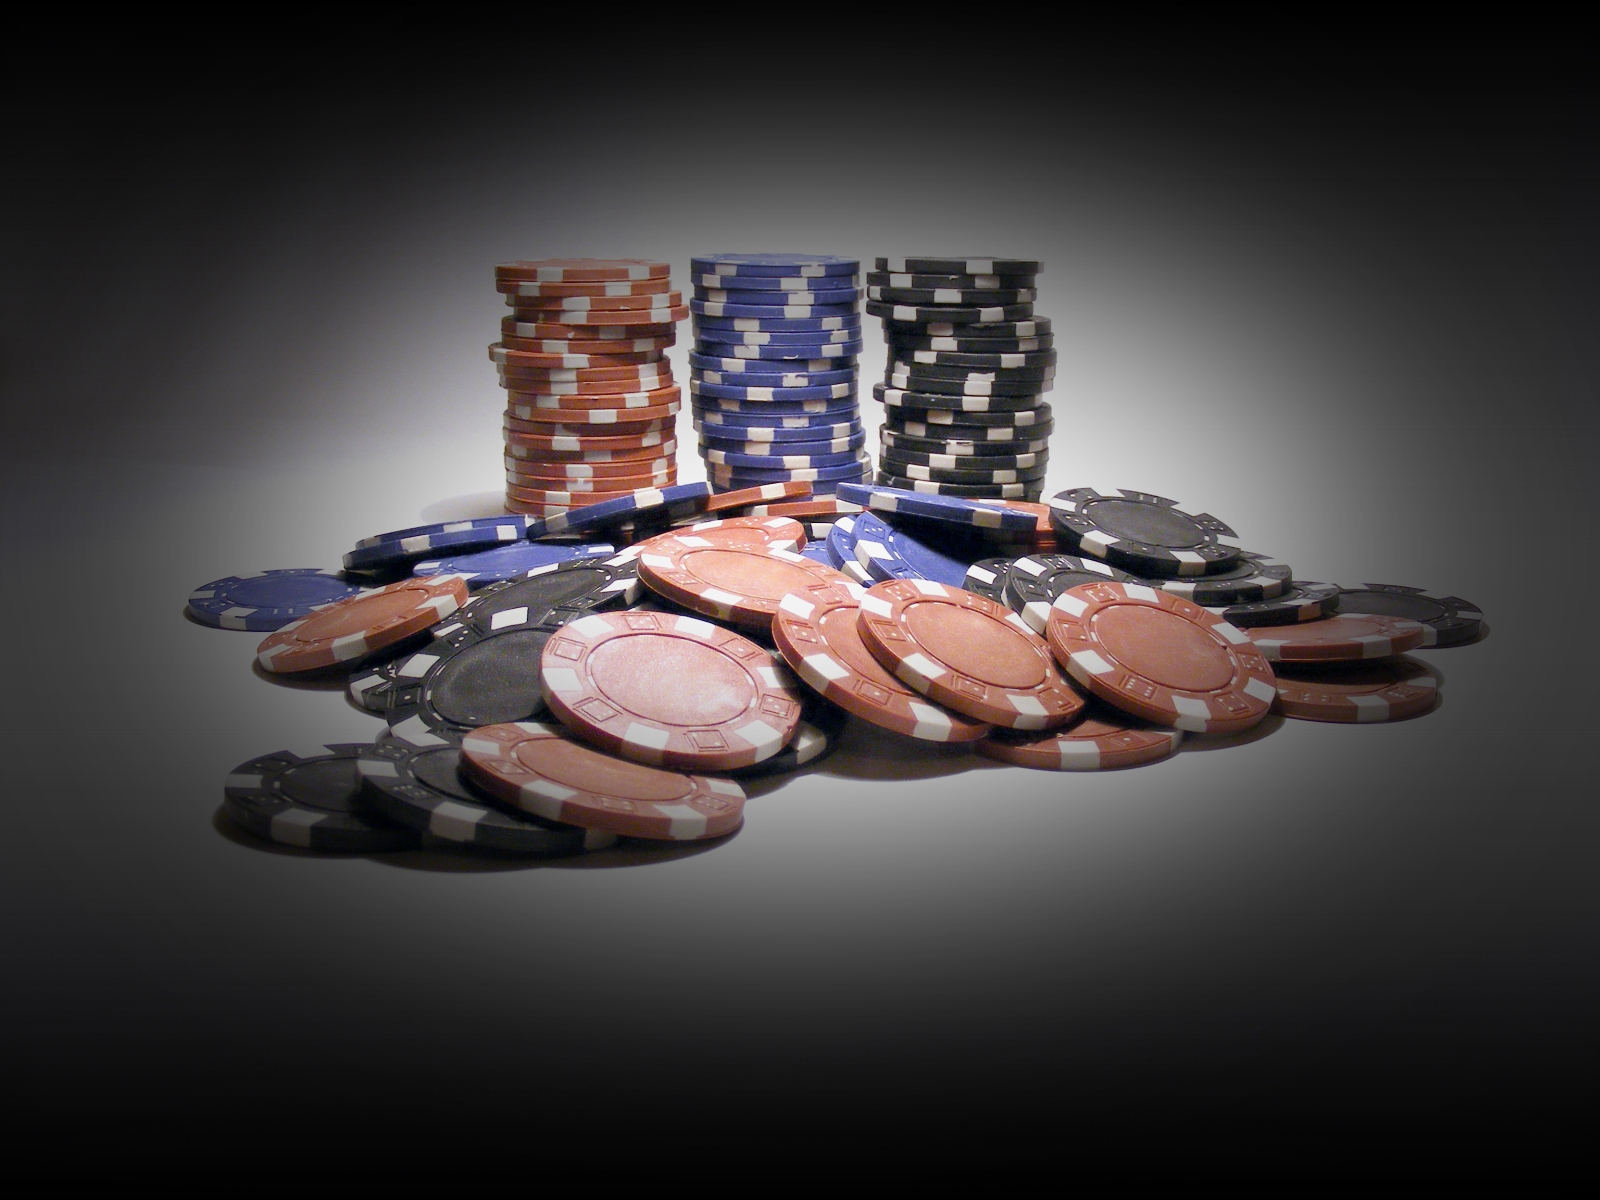 Download Wallpaper Poker Chips in der Auflsung 1920 x 1200 1600x1200